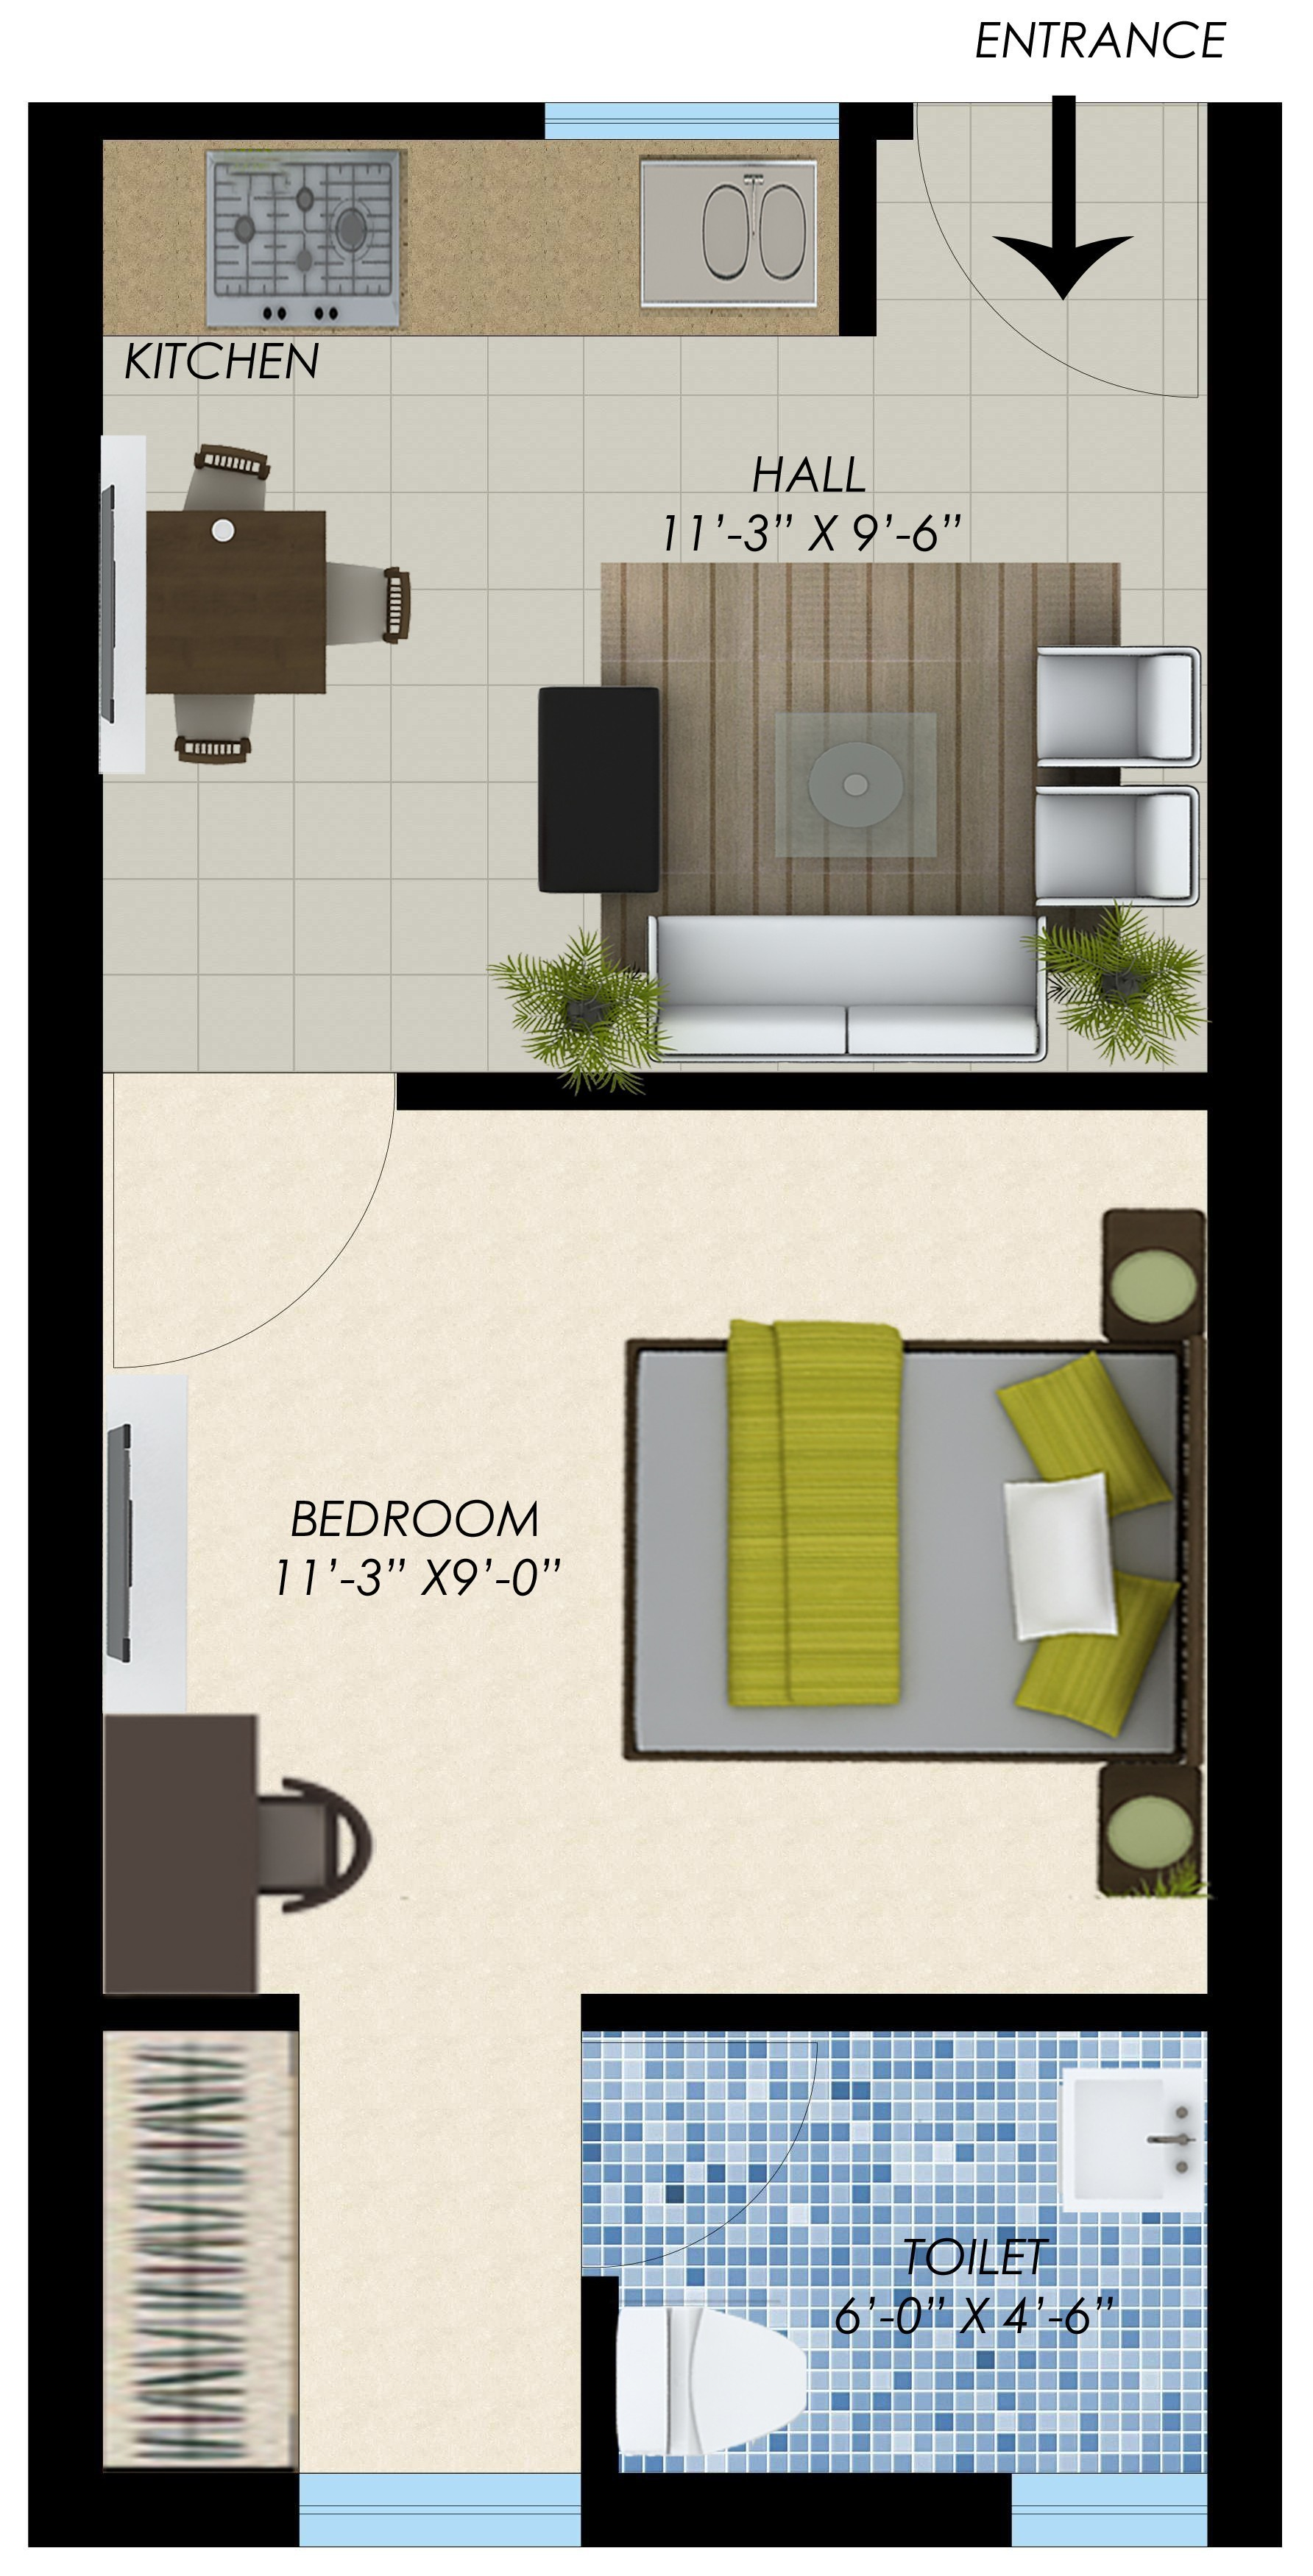 wwics imperial heights sector 115 mohali 1bhk 401 sqft flat layout design